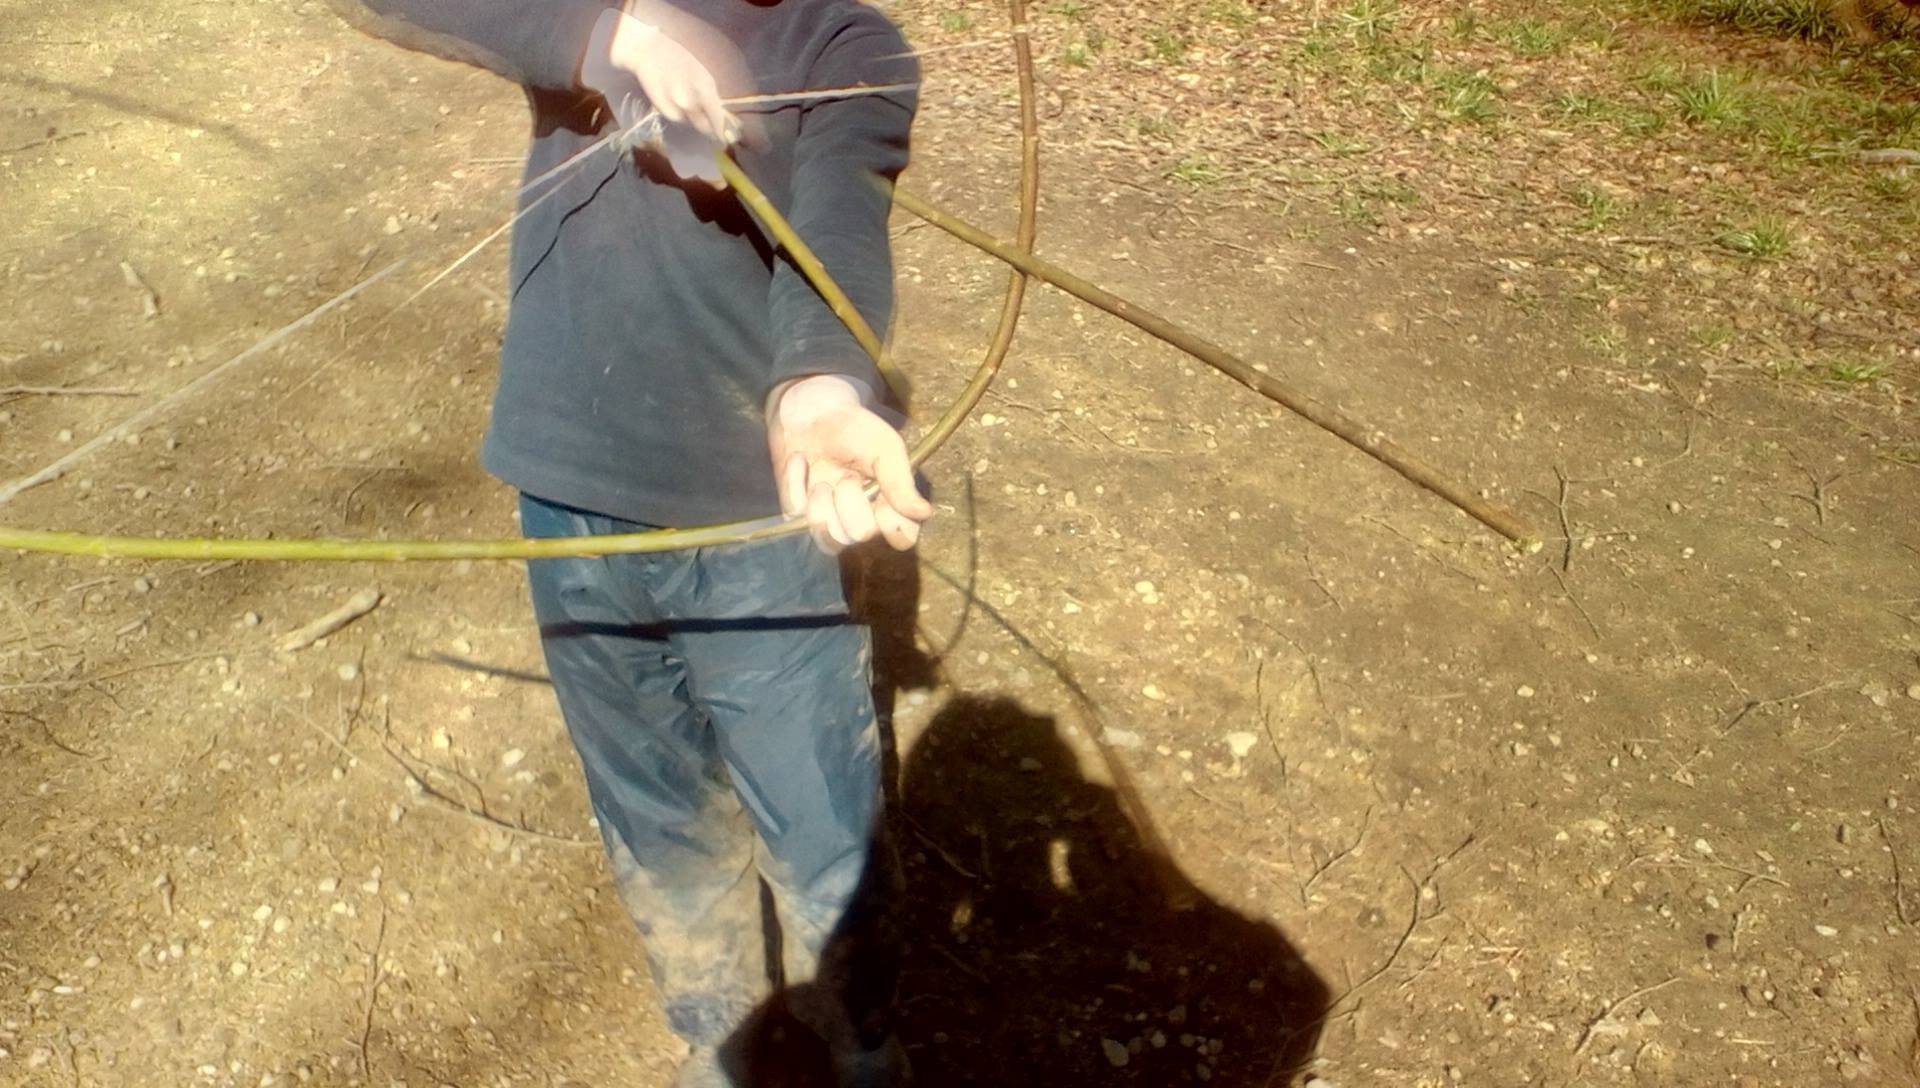 Billy and his bow and arrow today!